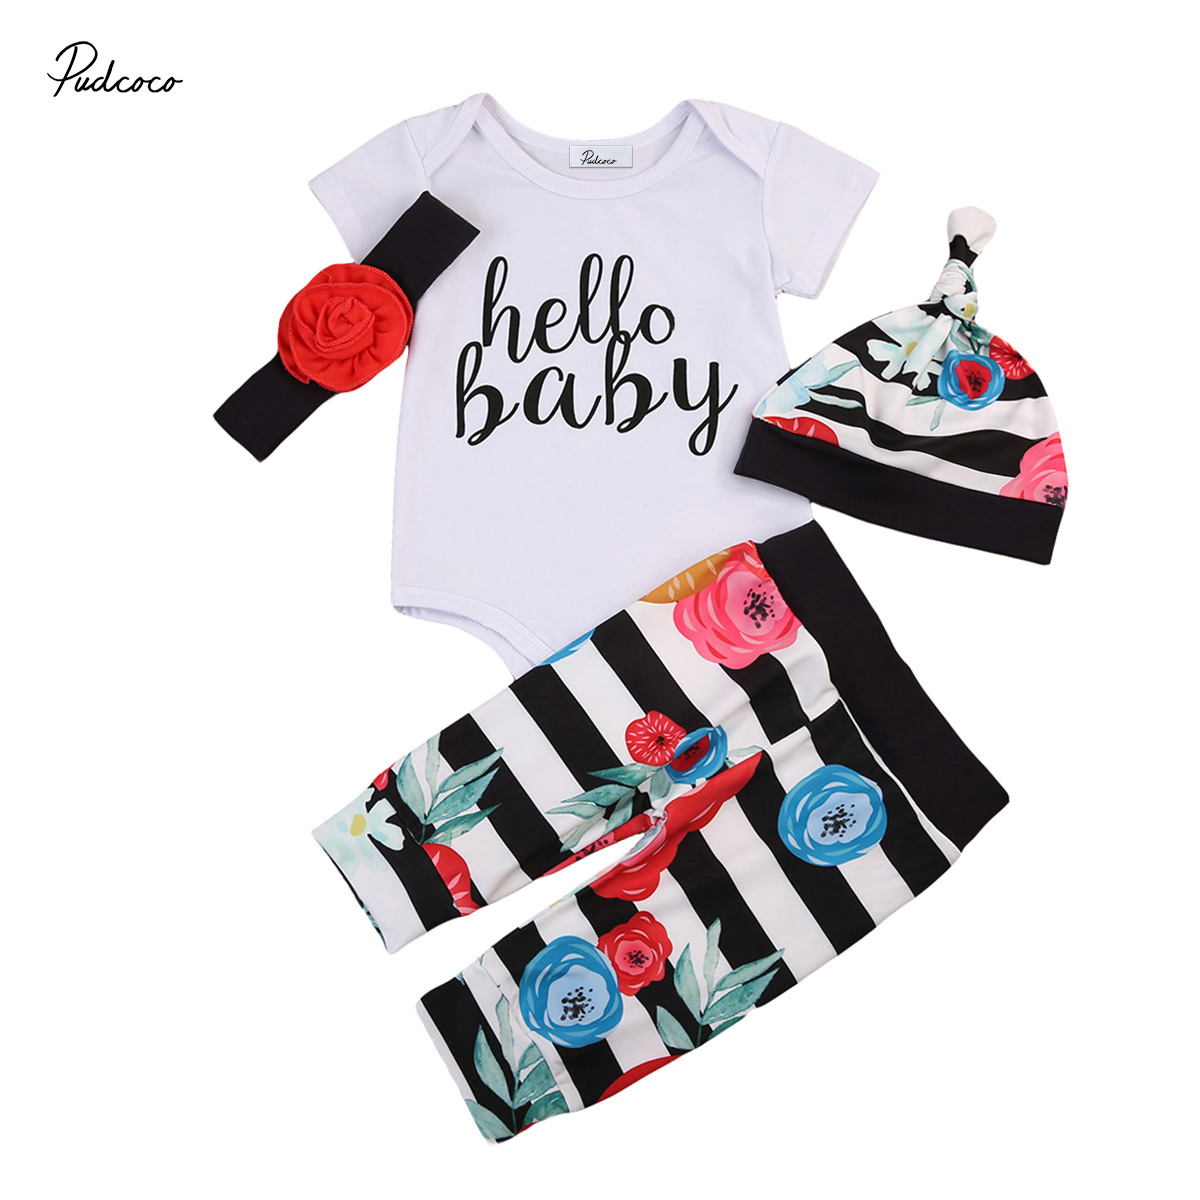 Cute Newborn Toddler Infant Baby Girs Romper Short Sleeve Tops Pants Leggings Hat Floral Headband 4PCS Outfits Clothes Set